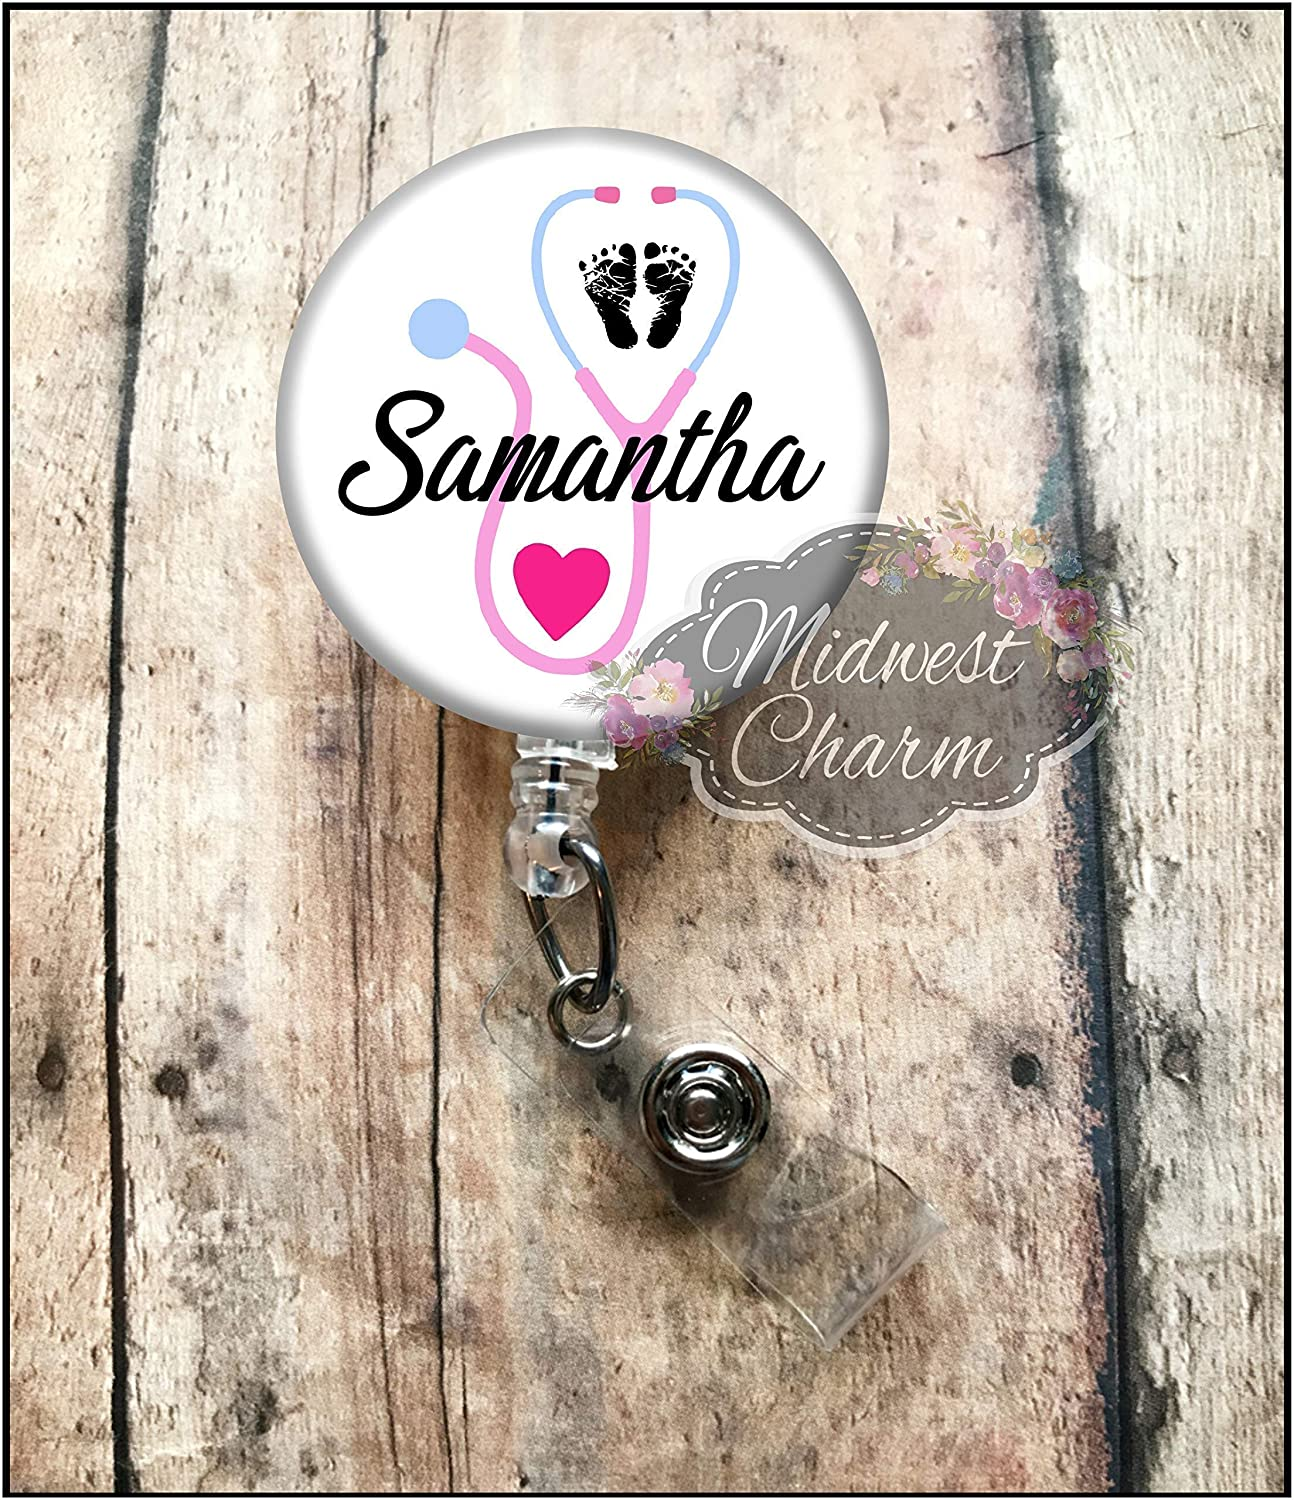 Retractable baby feet badge holder reel Personalized Christmas Gift Midwest Charm ob L/&D baby feet and stethoscope id holder nurse gift